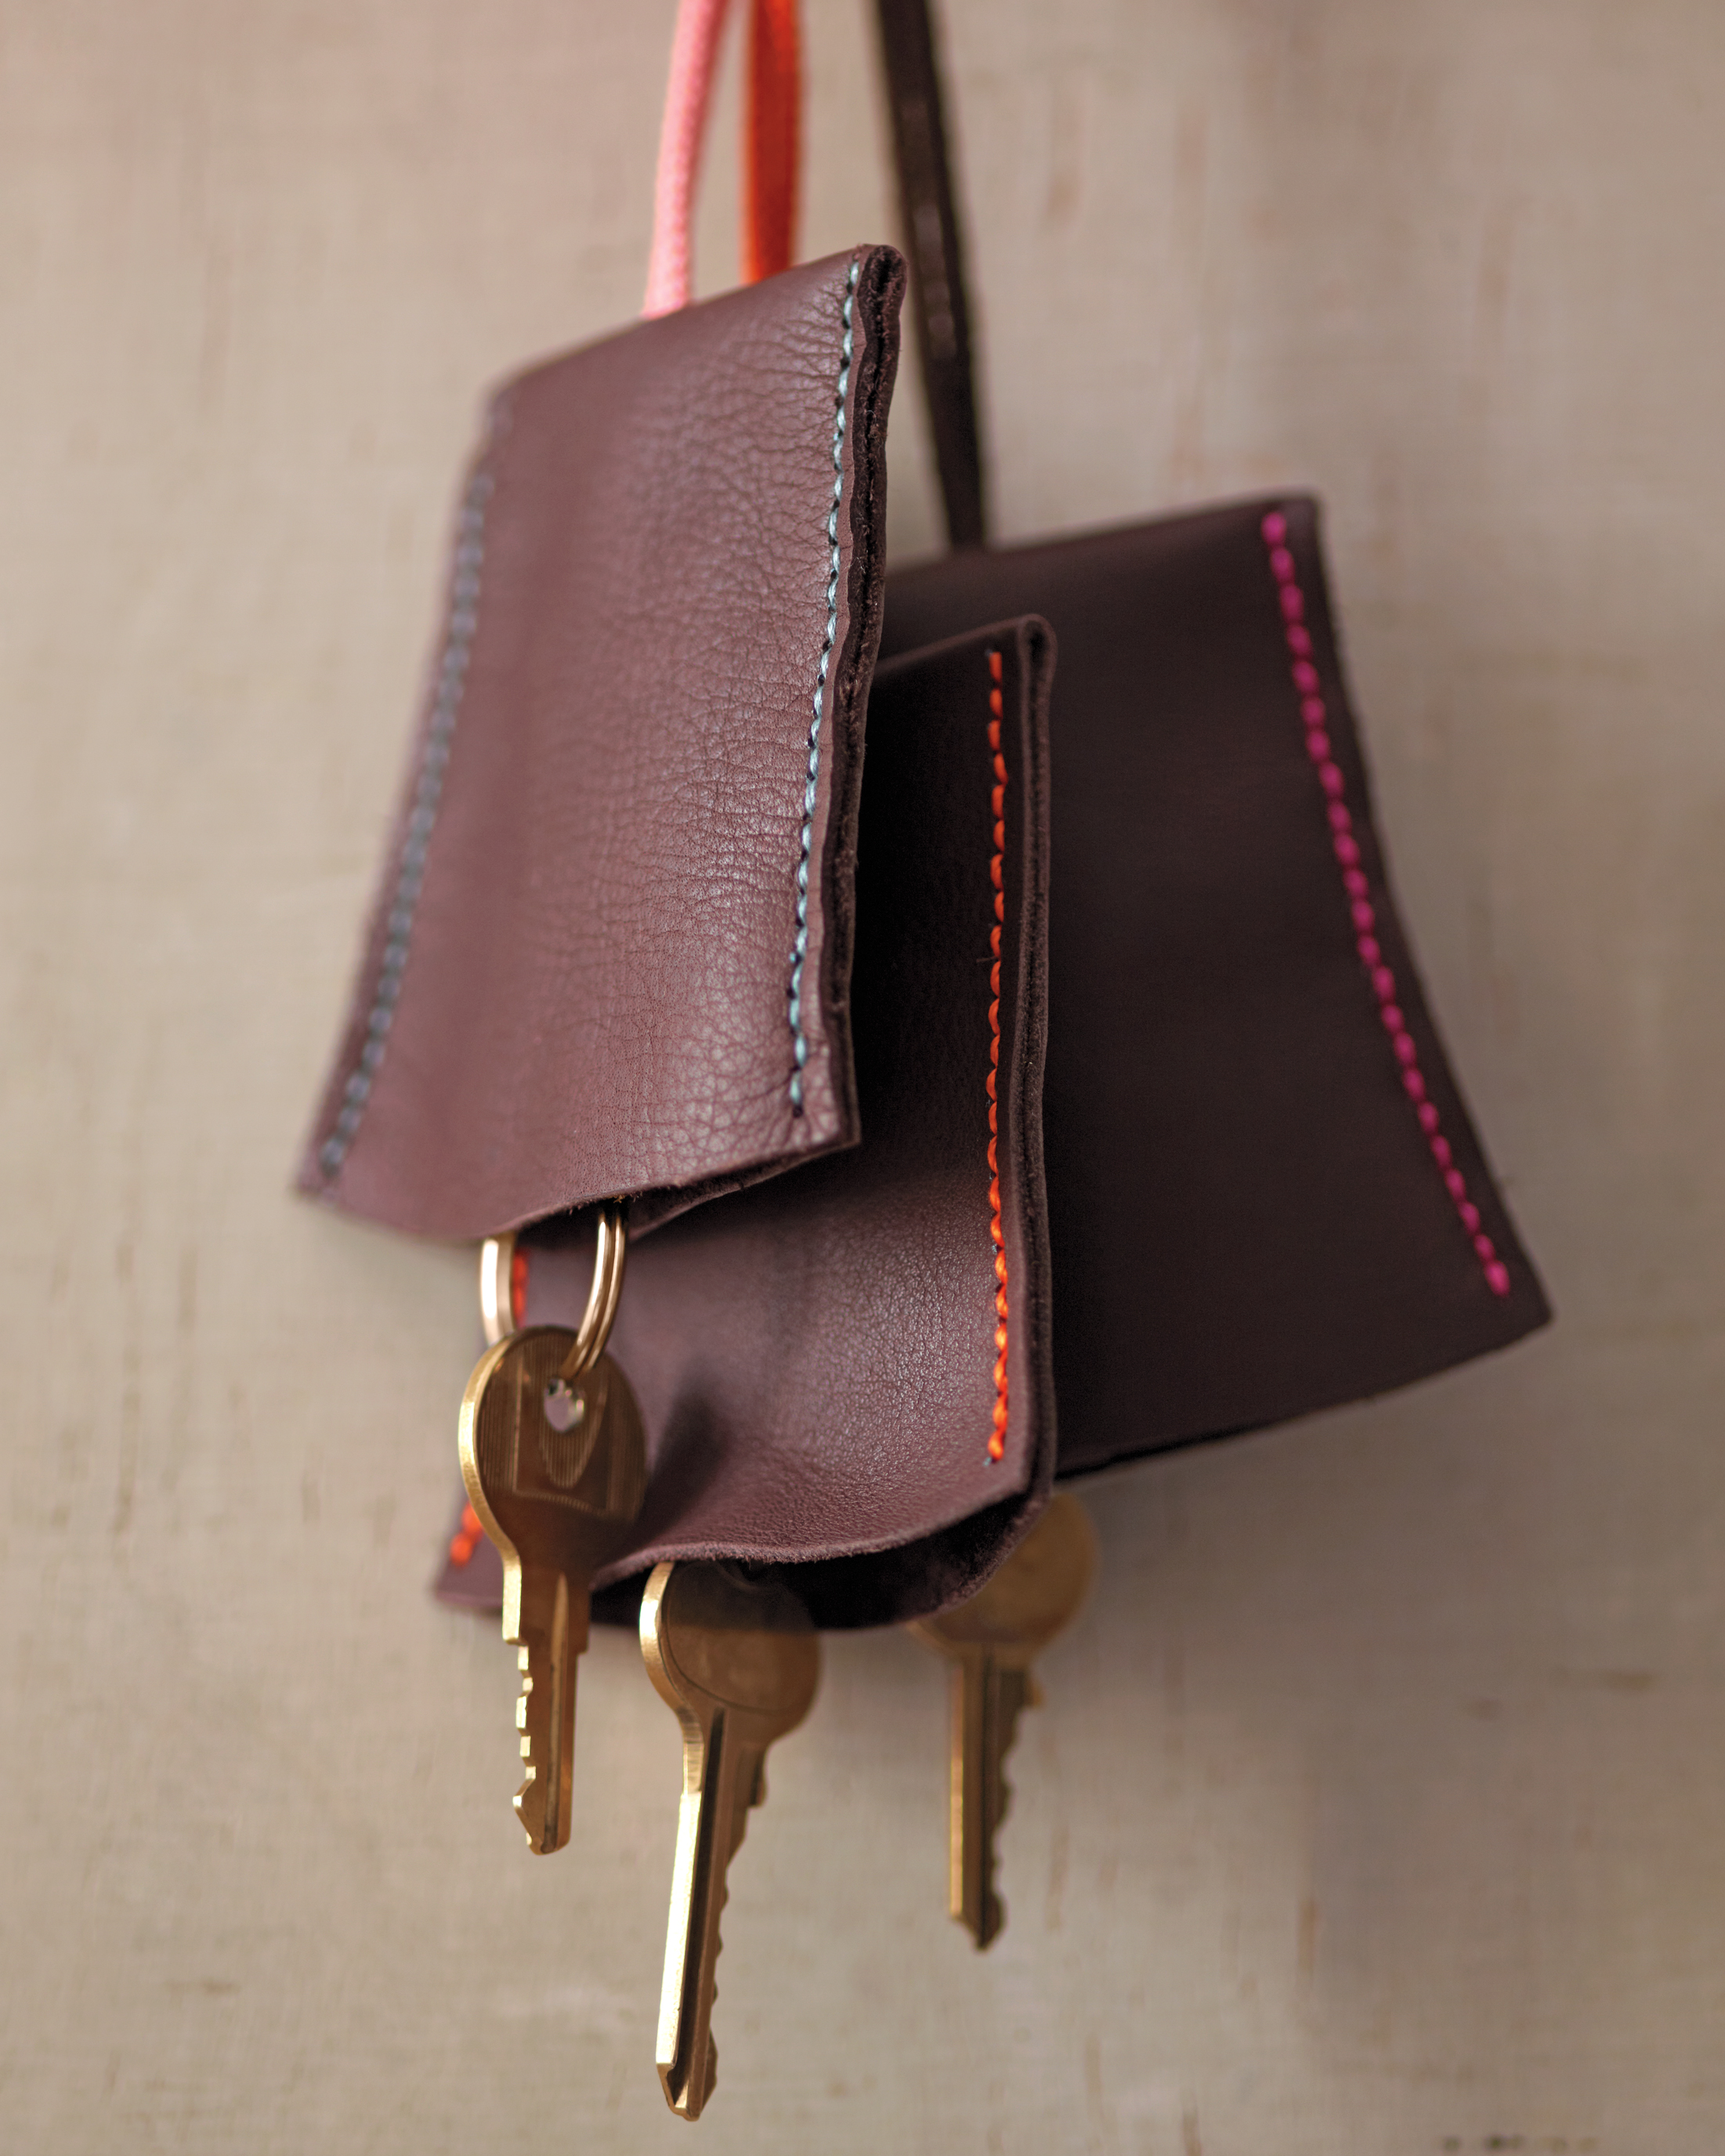 leather-keychain-holder-023-md110598.jpg